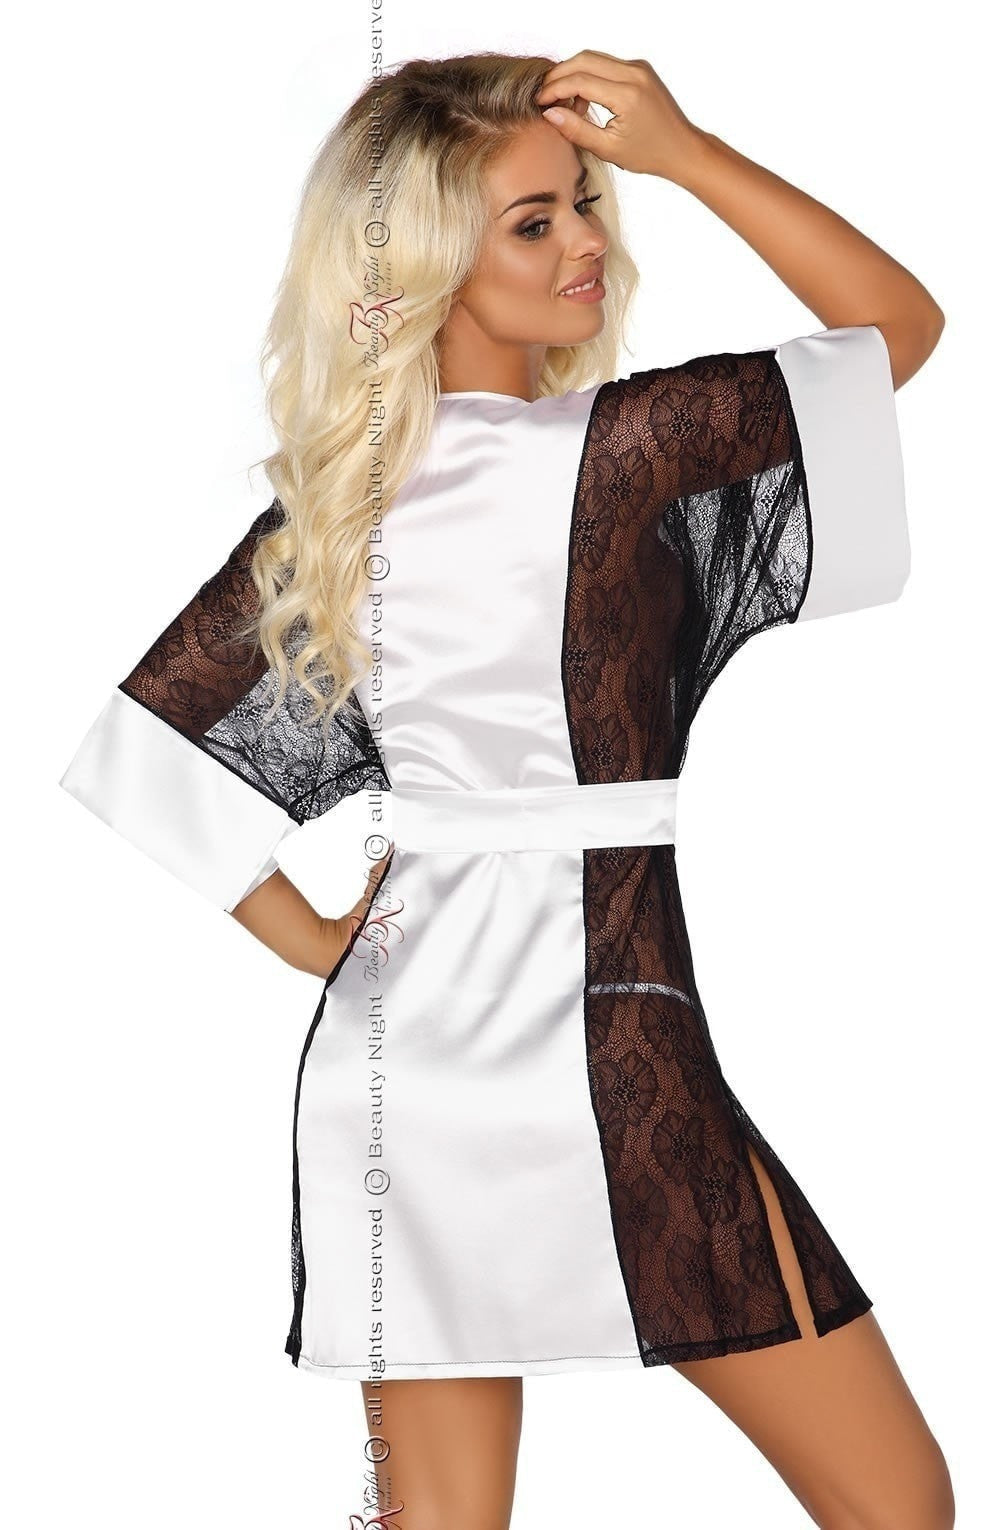 Beauty Night Stephanie Dressing Gown Set (White) at Charm and Lace ...